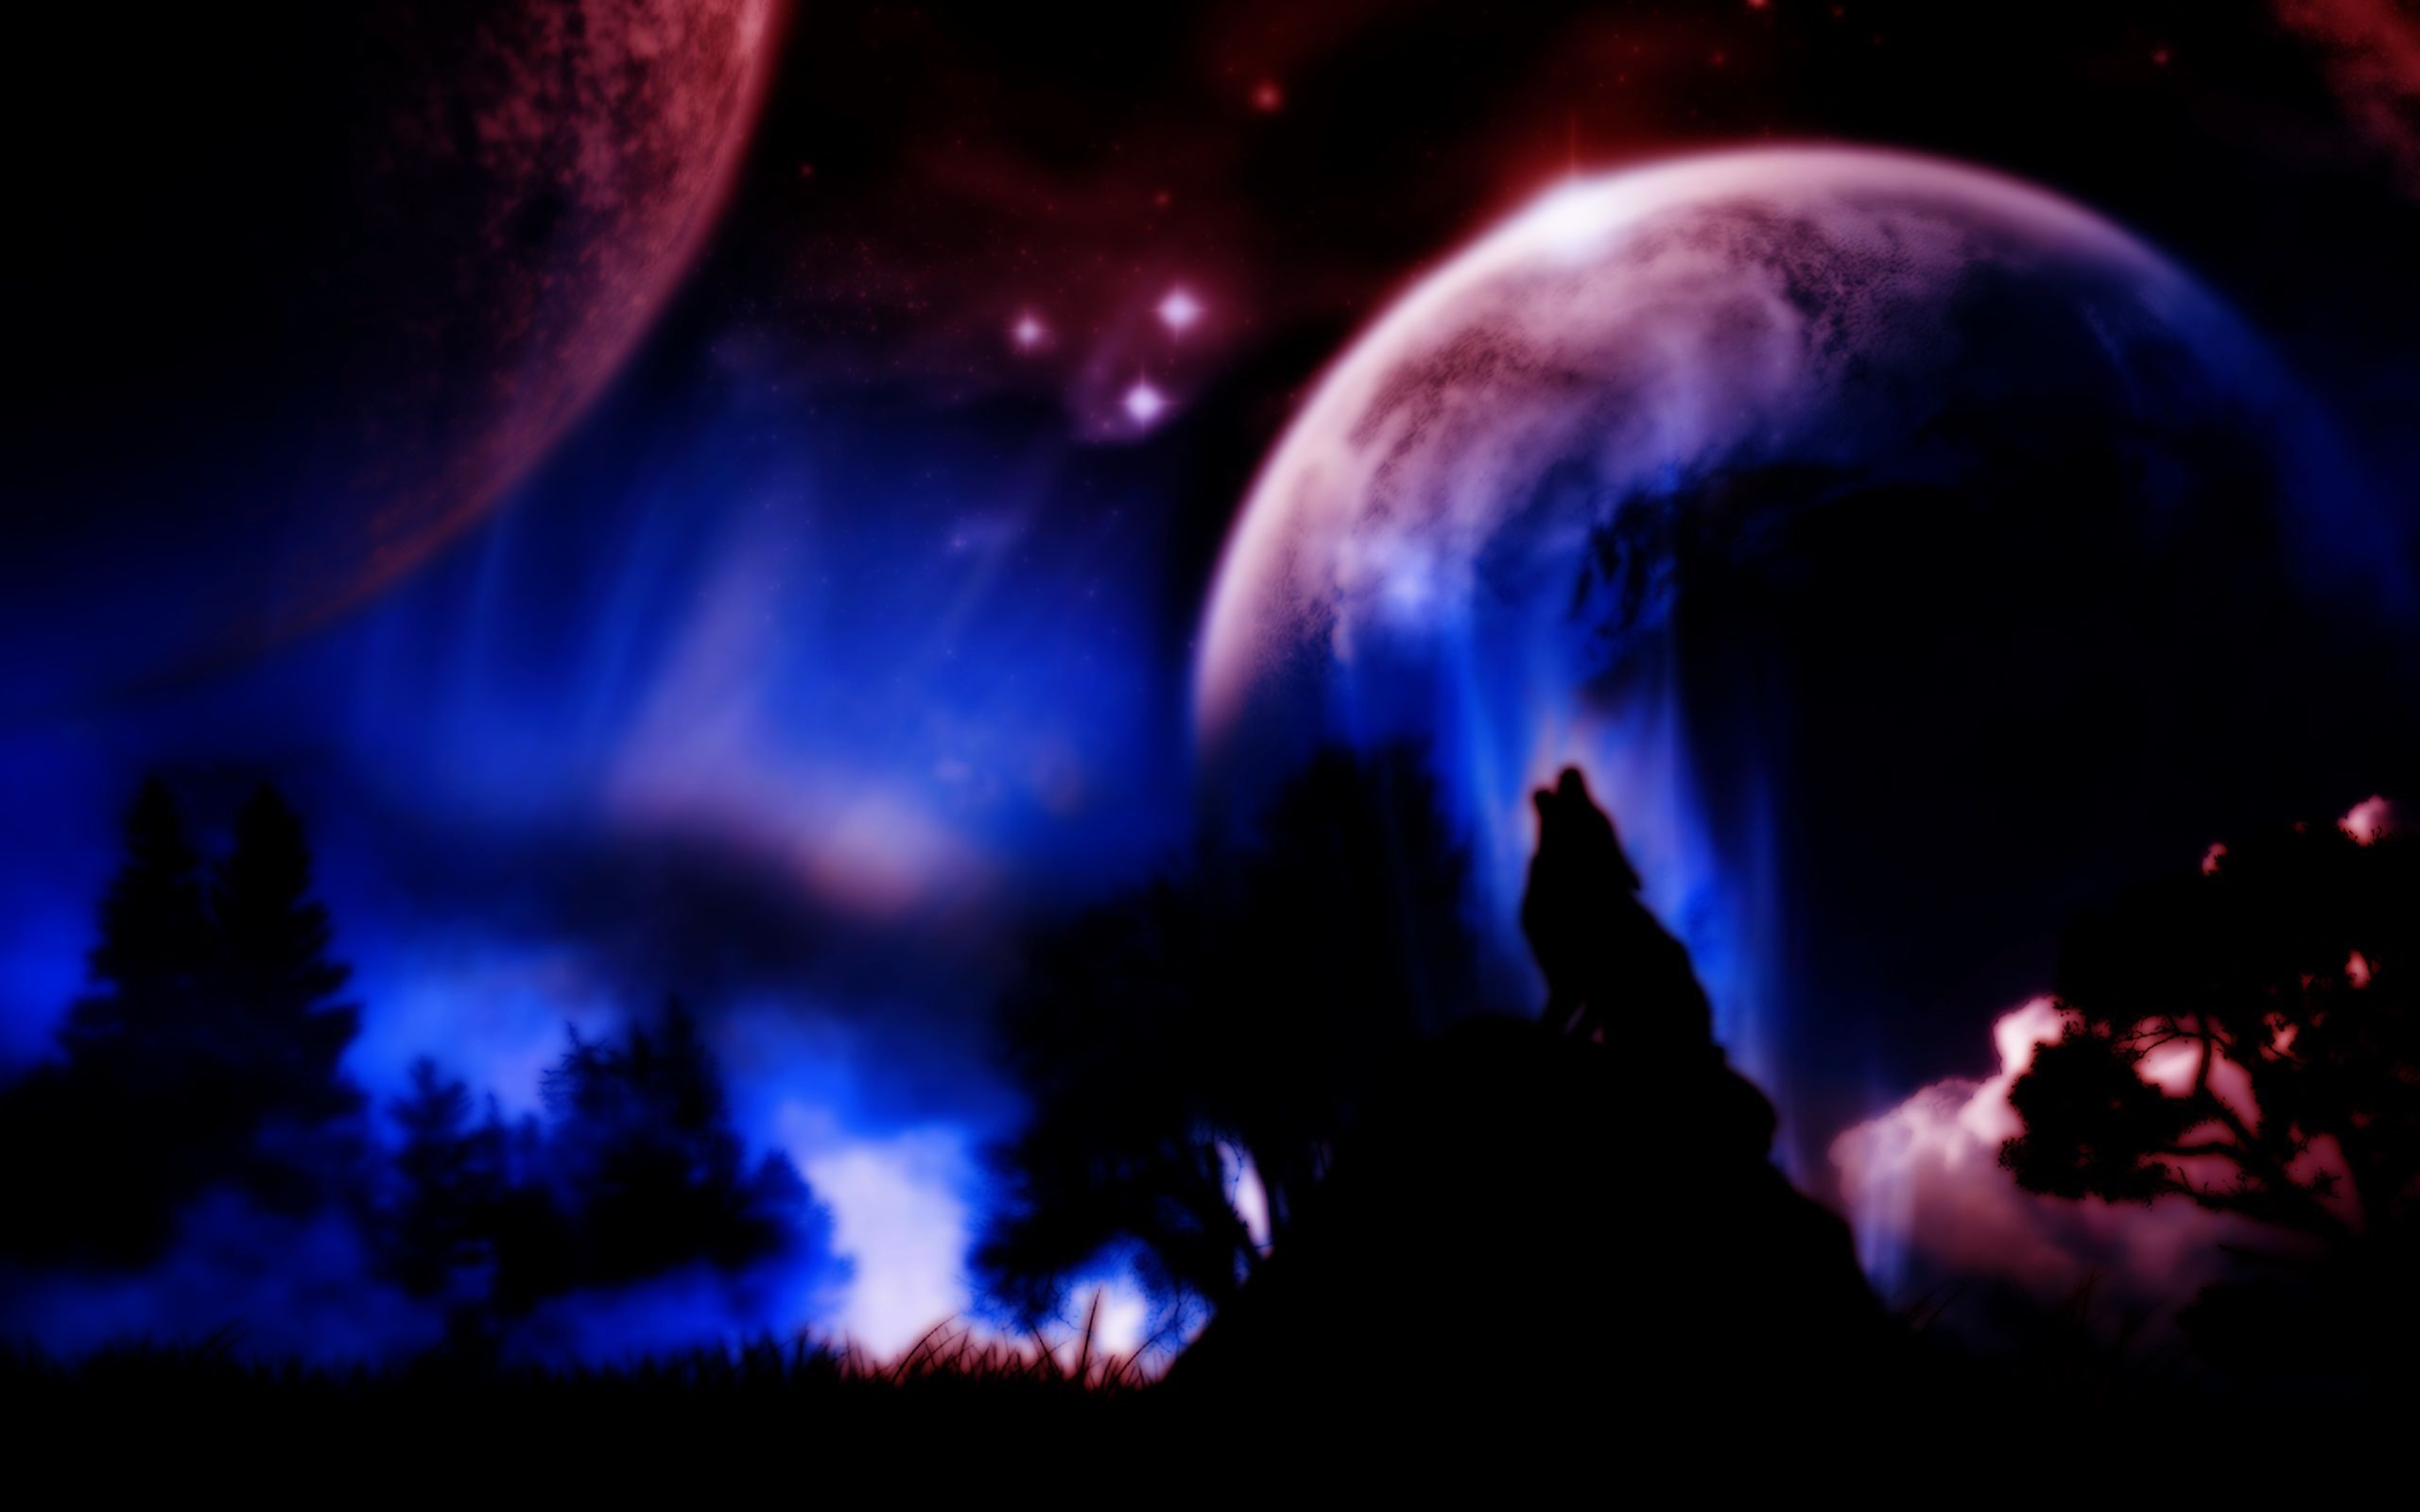 Wolf howling at the moon, planet, night, fantasy, HD .